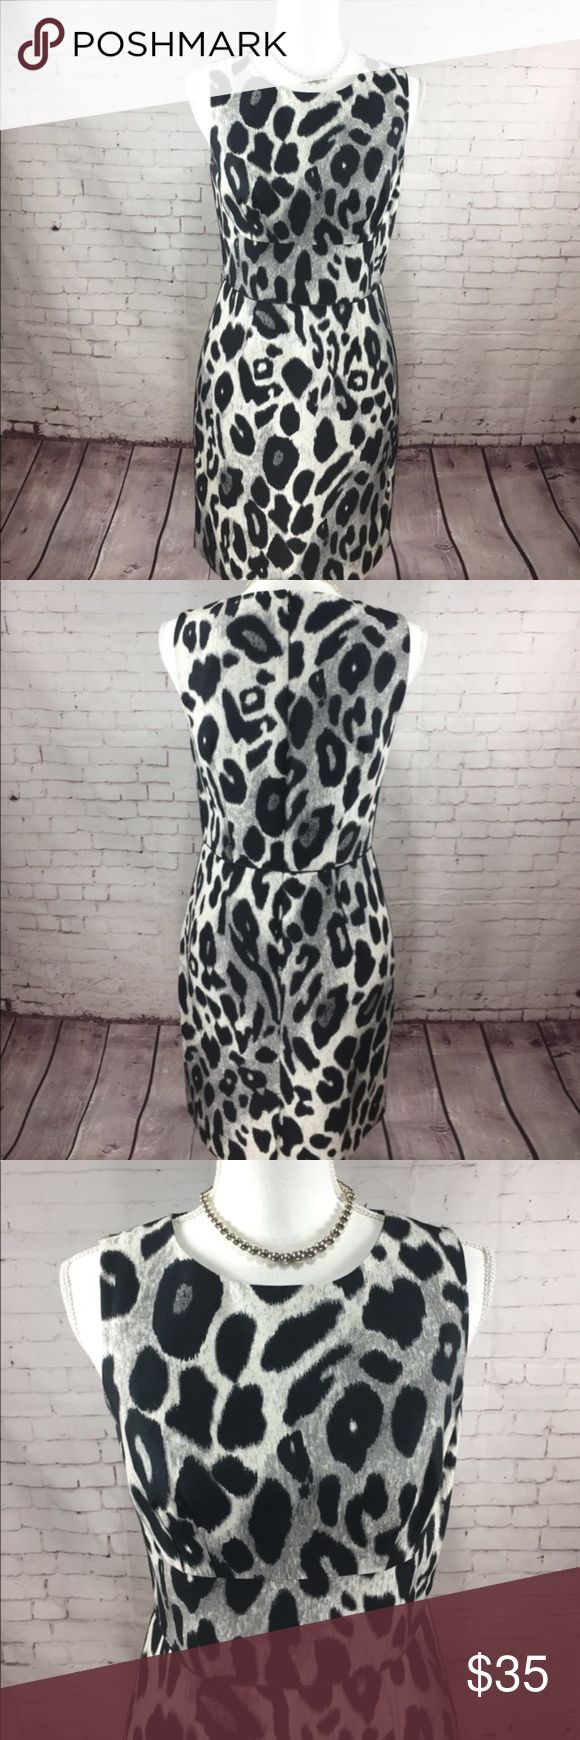 Ann Taylor Animal Print  Sheath Dress Size 4 ▪️Ann Taylor 013 ▪️This chic dress is qualified to help you handle whatever comes your way, interviews, meetings, coffee dates, you name it! ▪️Classic and Stylish Cream and Black print. Add a smart Blazer for a complete and polish look. ▪️Measurements: laying flat Length approx. 35!inches, Armpit to armpit approx. 17 inches, waist is approx. 15 inches,  ▪️Size 2 Please see all pics, read description and ask questions before purchasing. Same day…